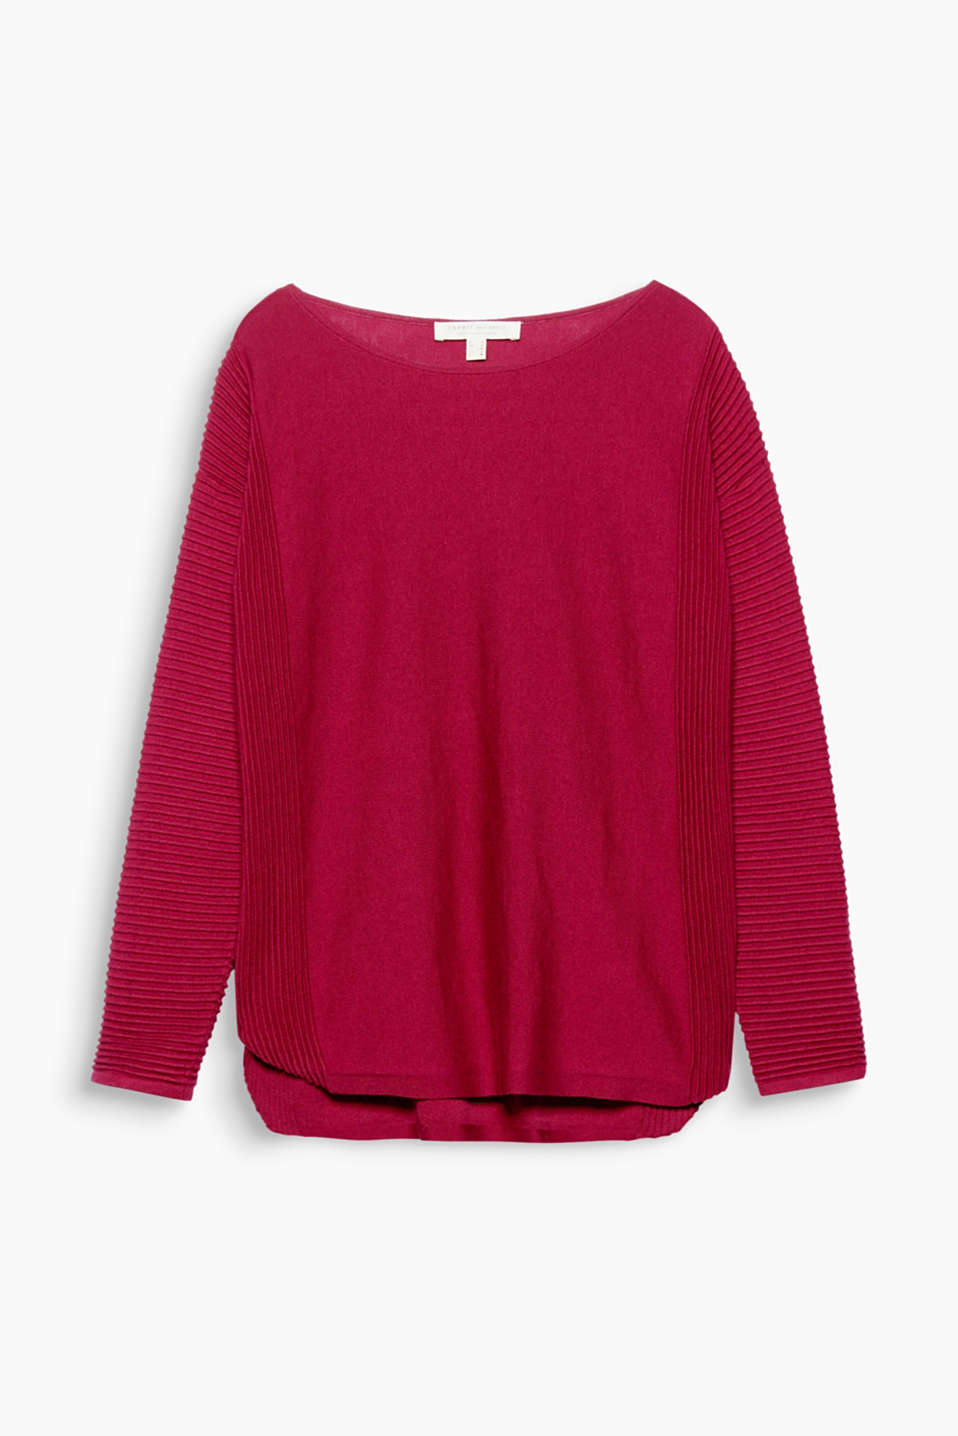 This lightweight jumper in a striking texture mix with a rounded hem is the perfect essential!